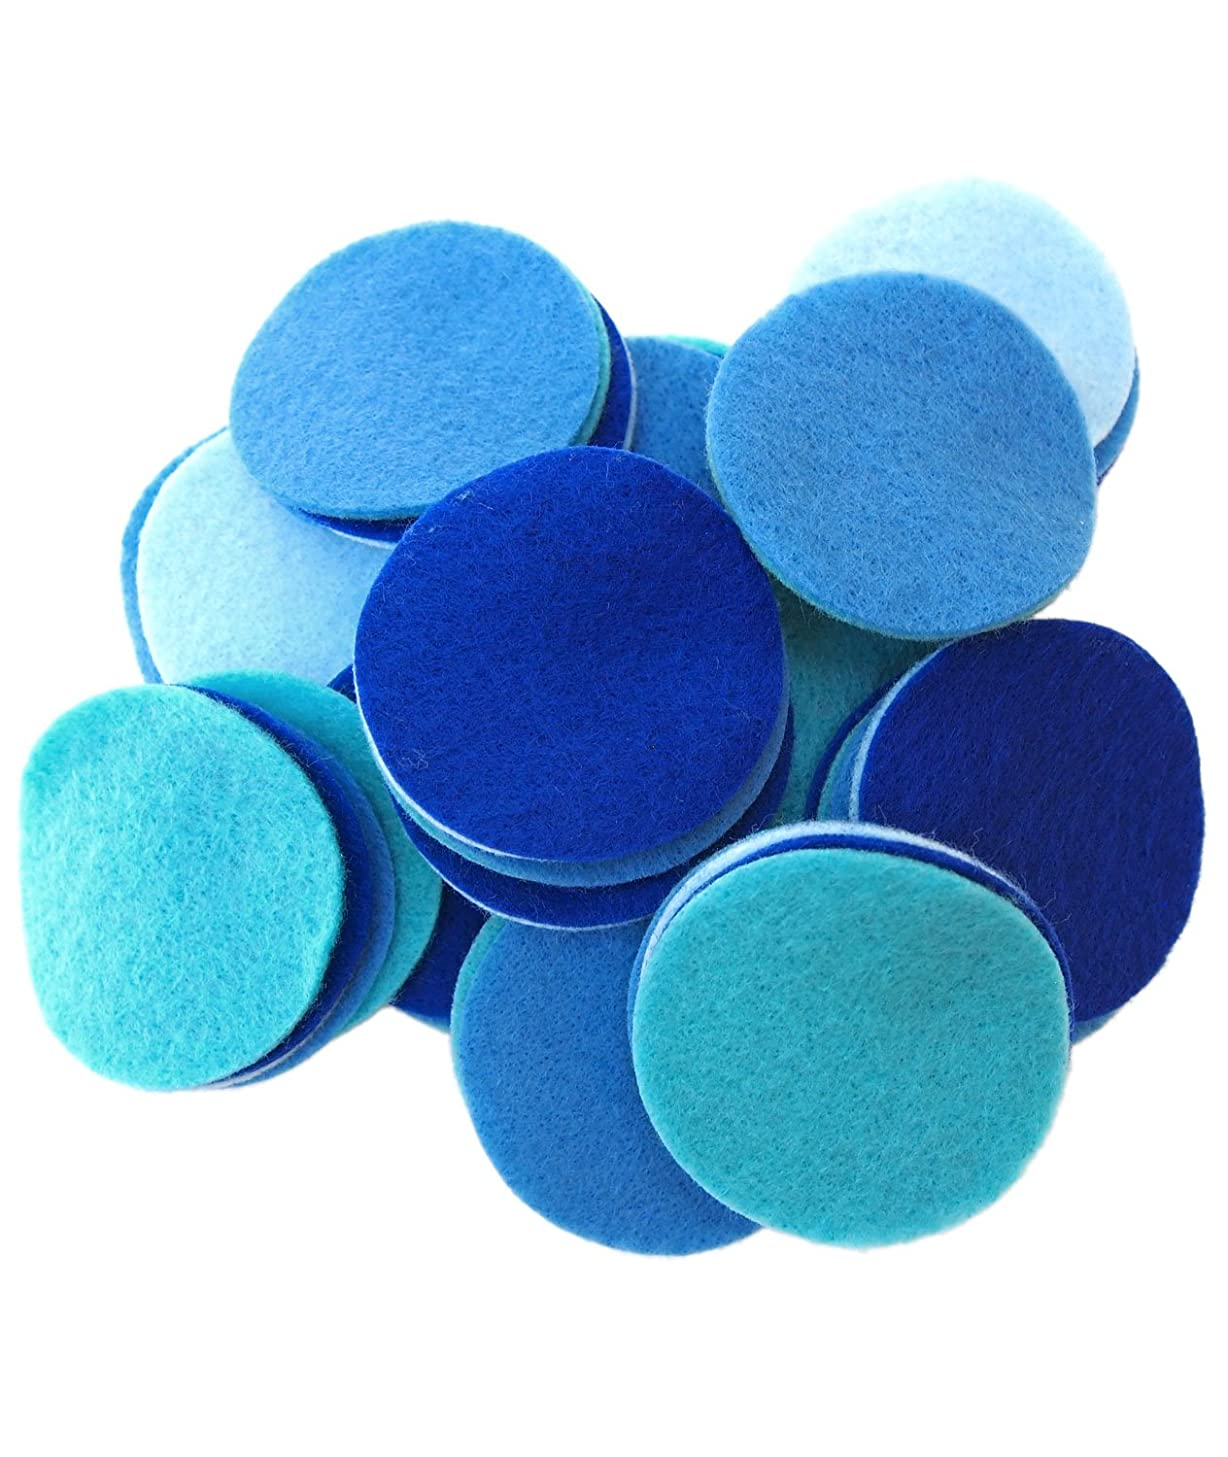 Playfully Ever After 2.5 Inch 48pc Felt Circles Color Combo Pack with Blue, Turquoise, Light Blue, Militia Blue